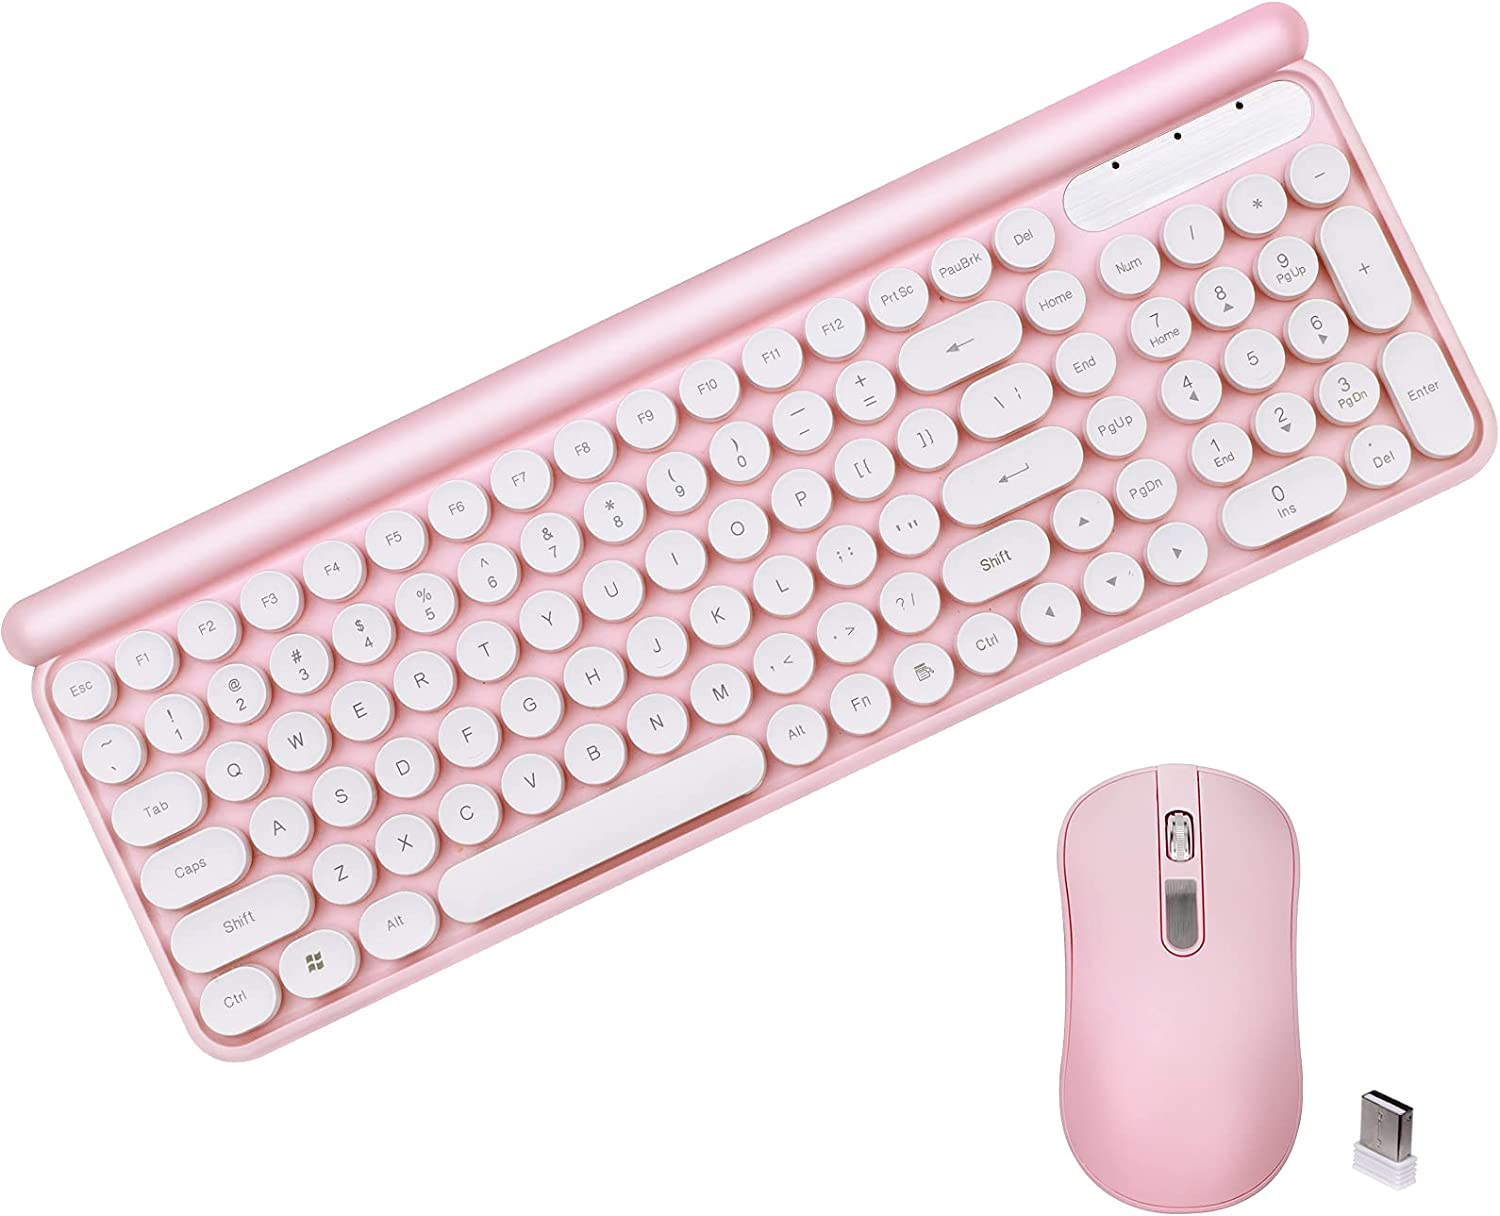 Wireless Keyboard and Mouse Combo, 2.4G Wireless Retro Circular Floating keycap, Suitable for PC, Windows, Laptop(Pink).